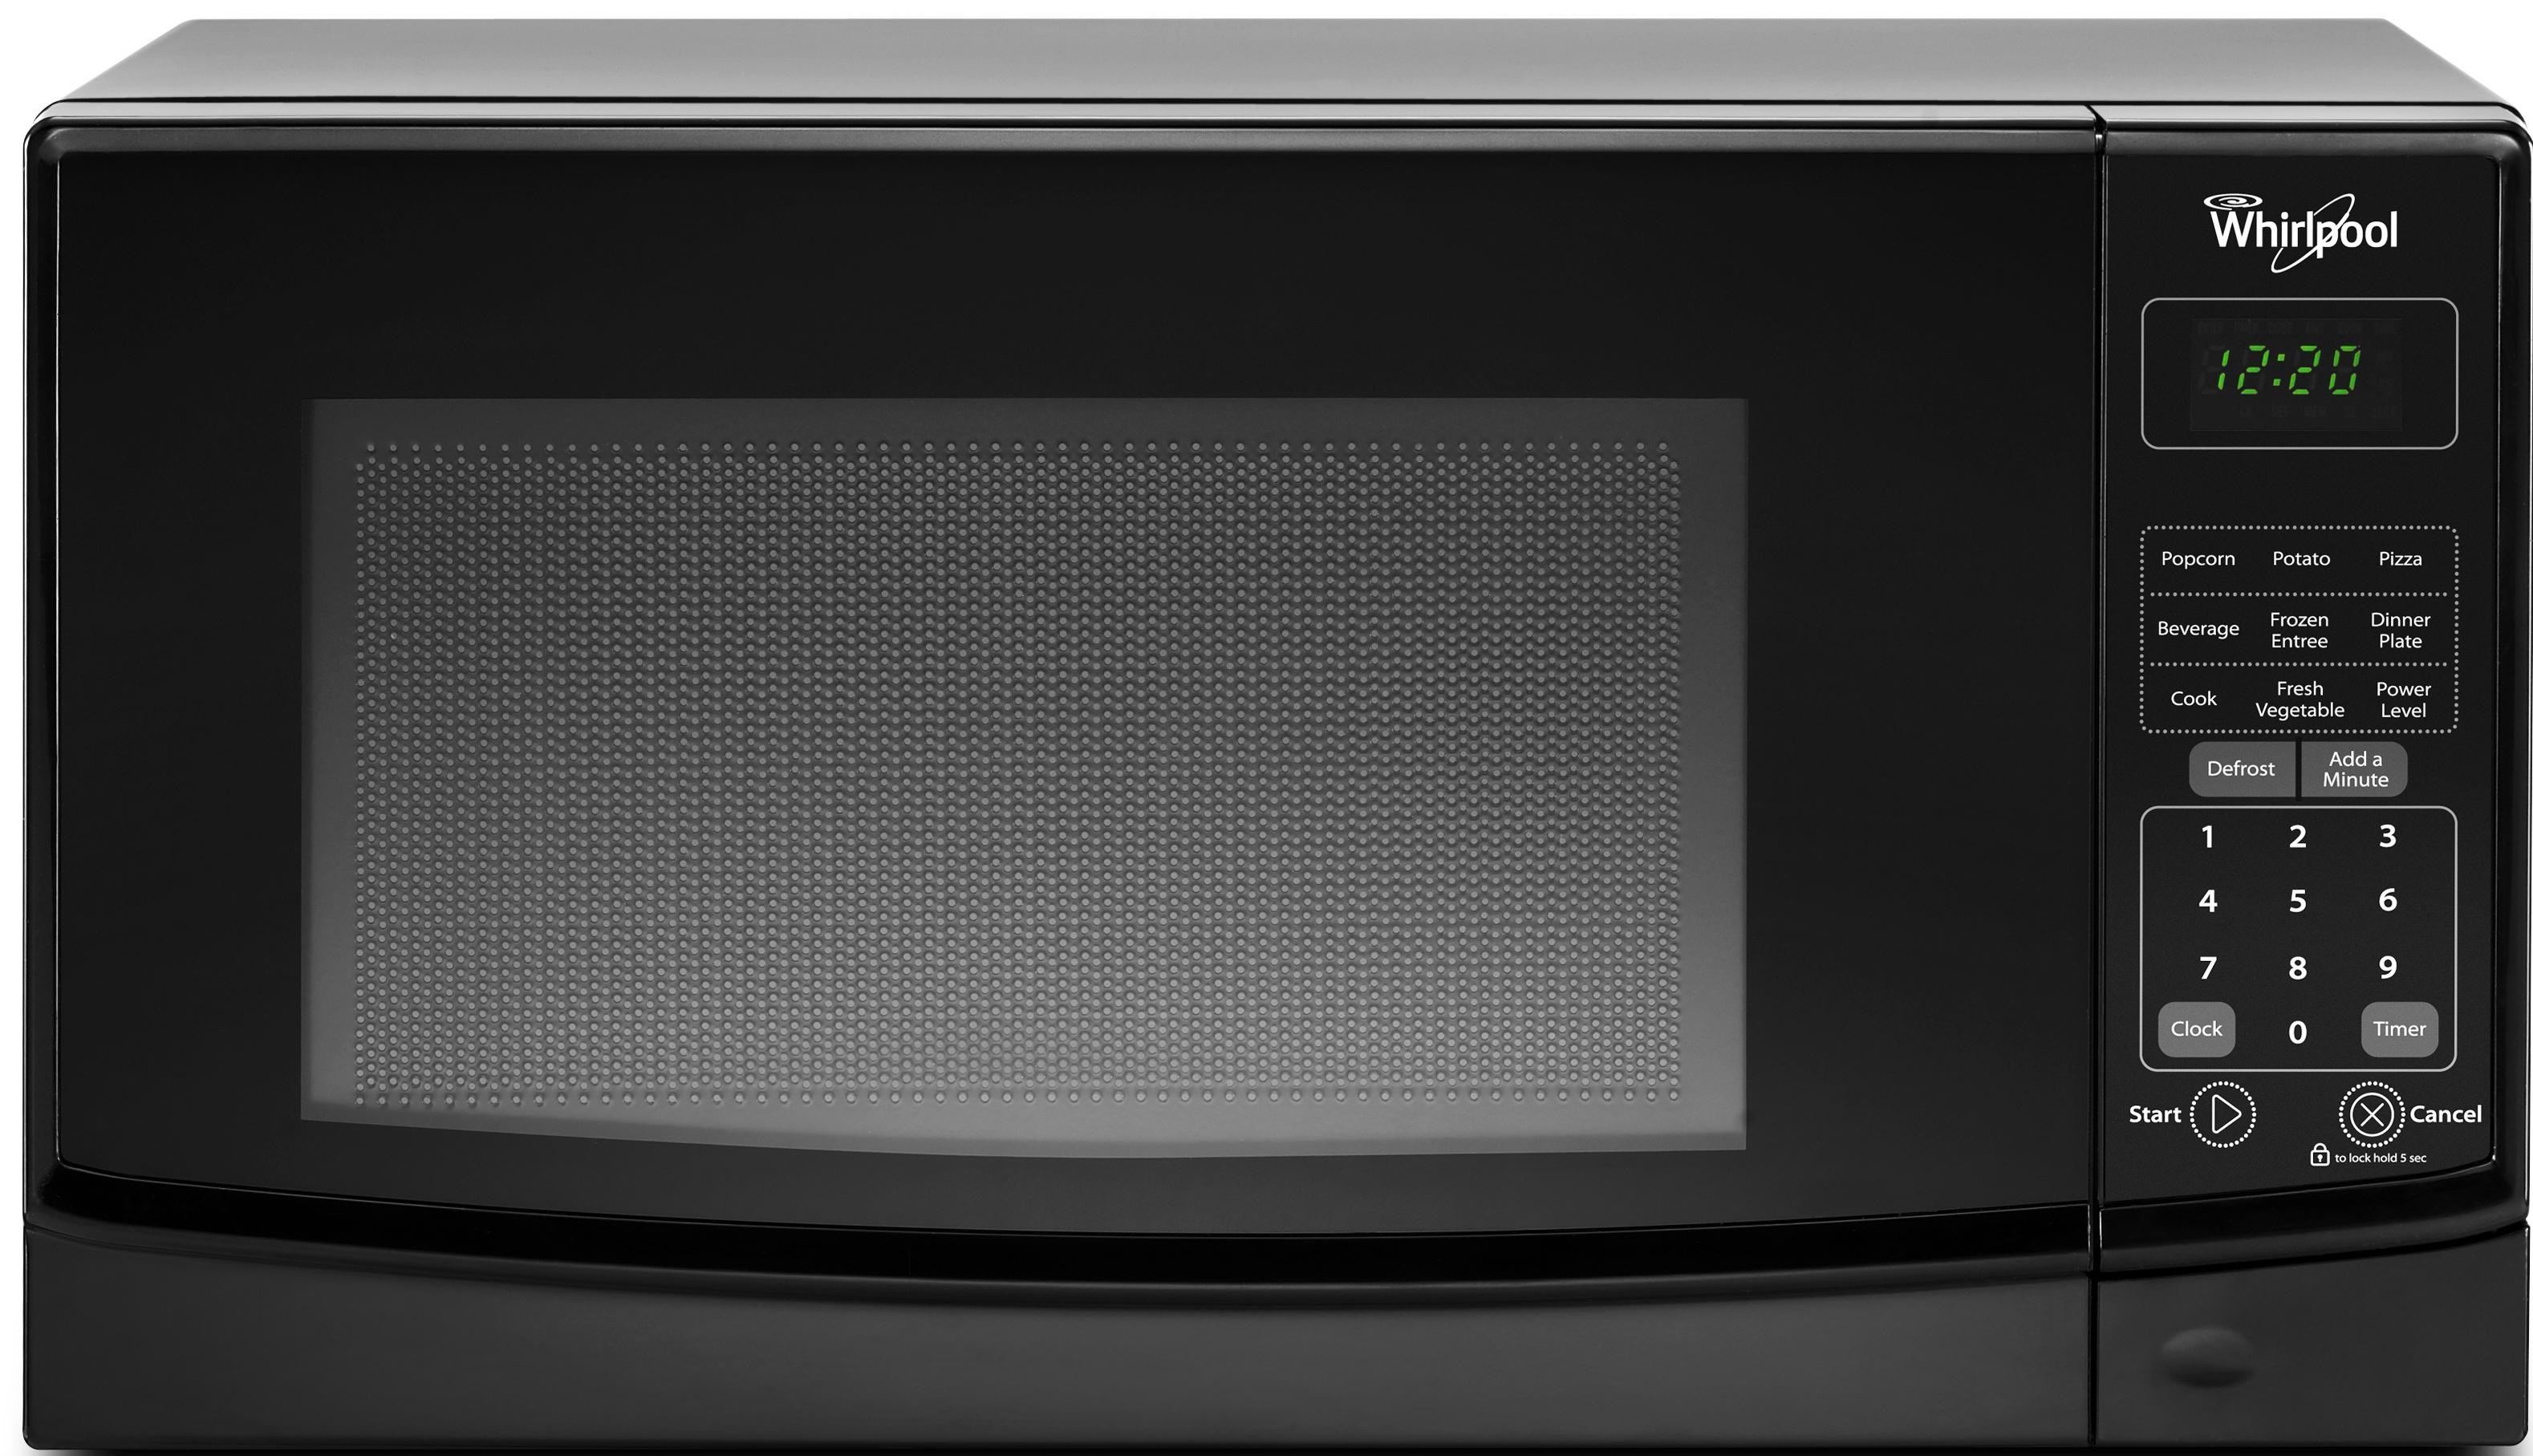 microwaves whirlpool 0 7 cu ft countertop microwave with 700 watts cooking power by whirlpool at furniture and appliancemart